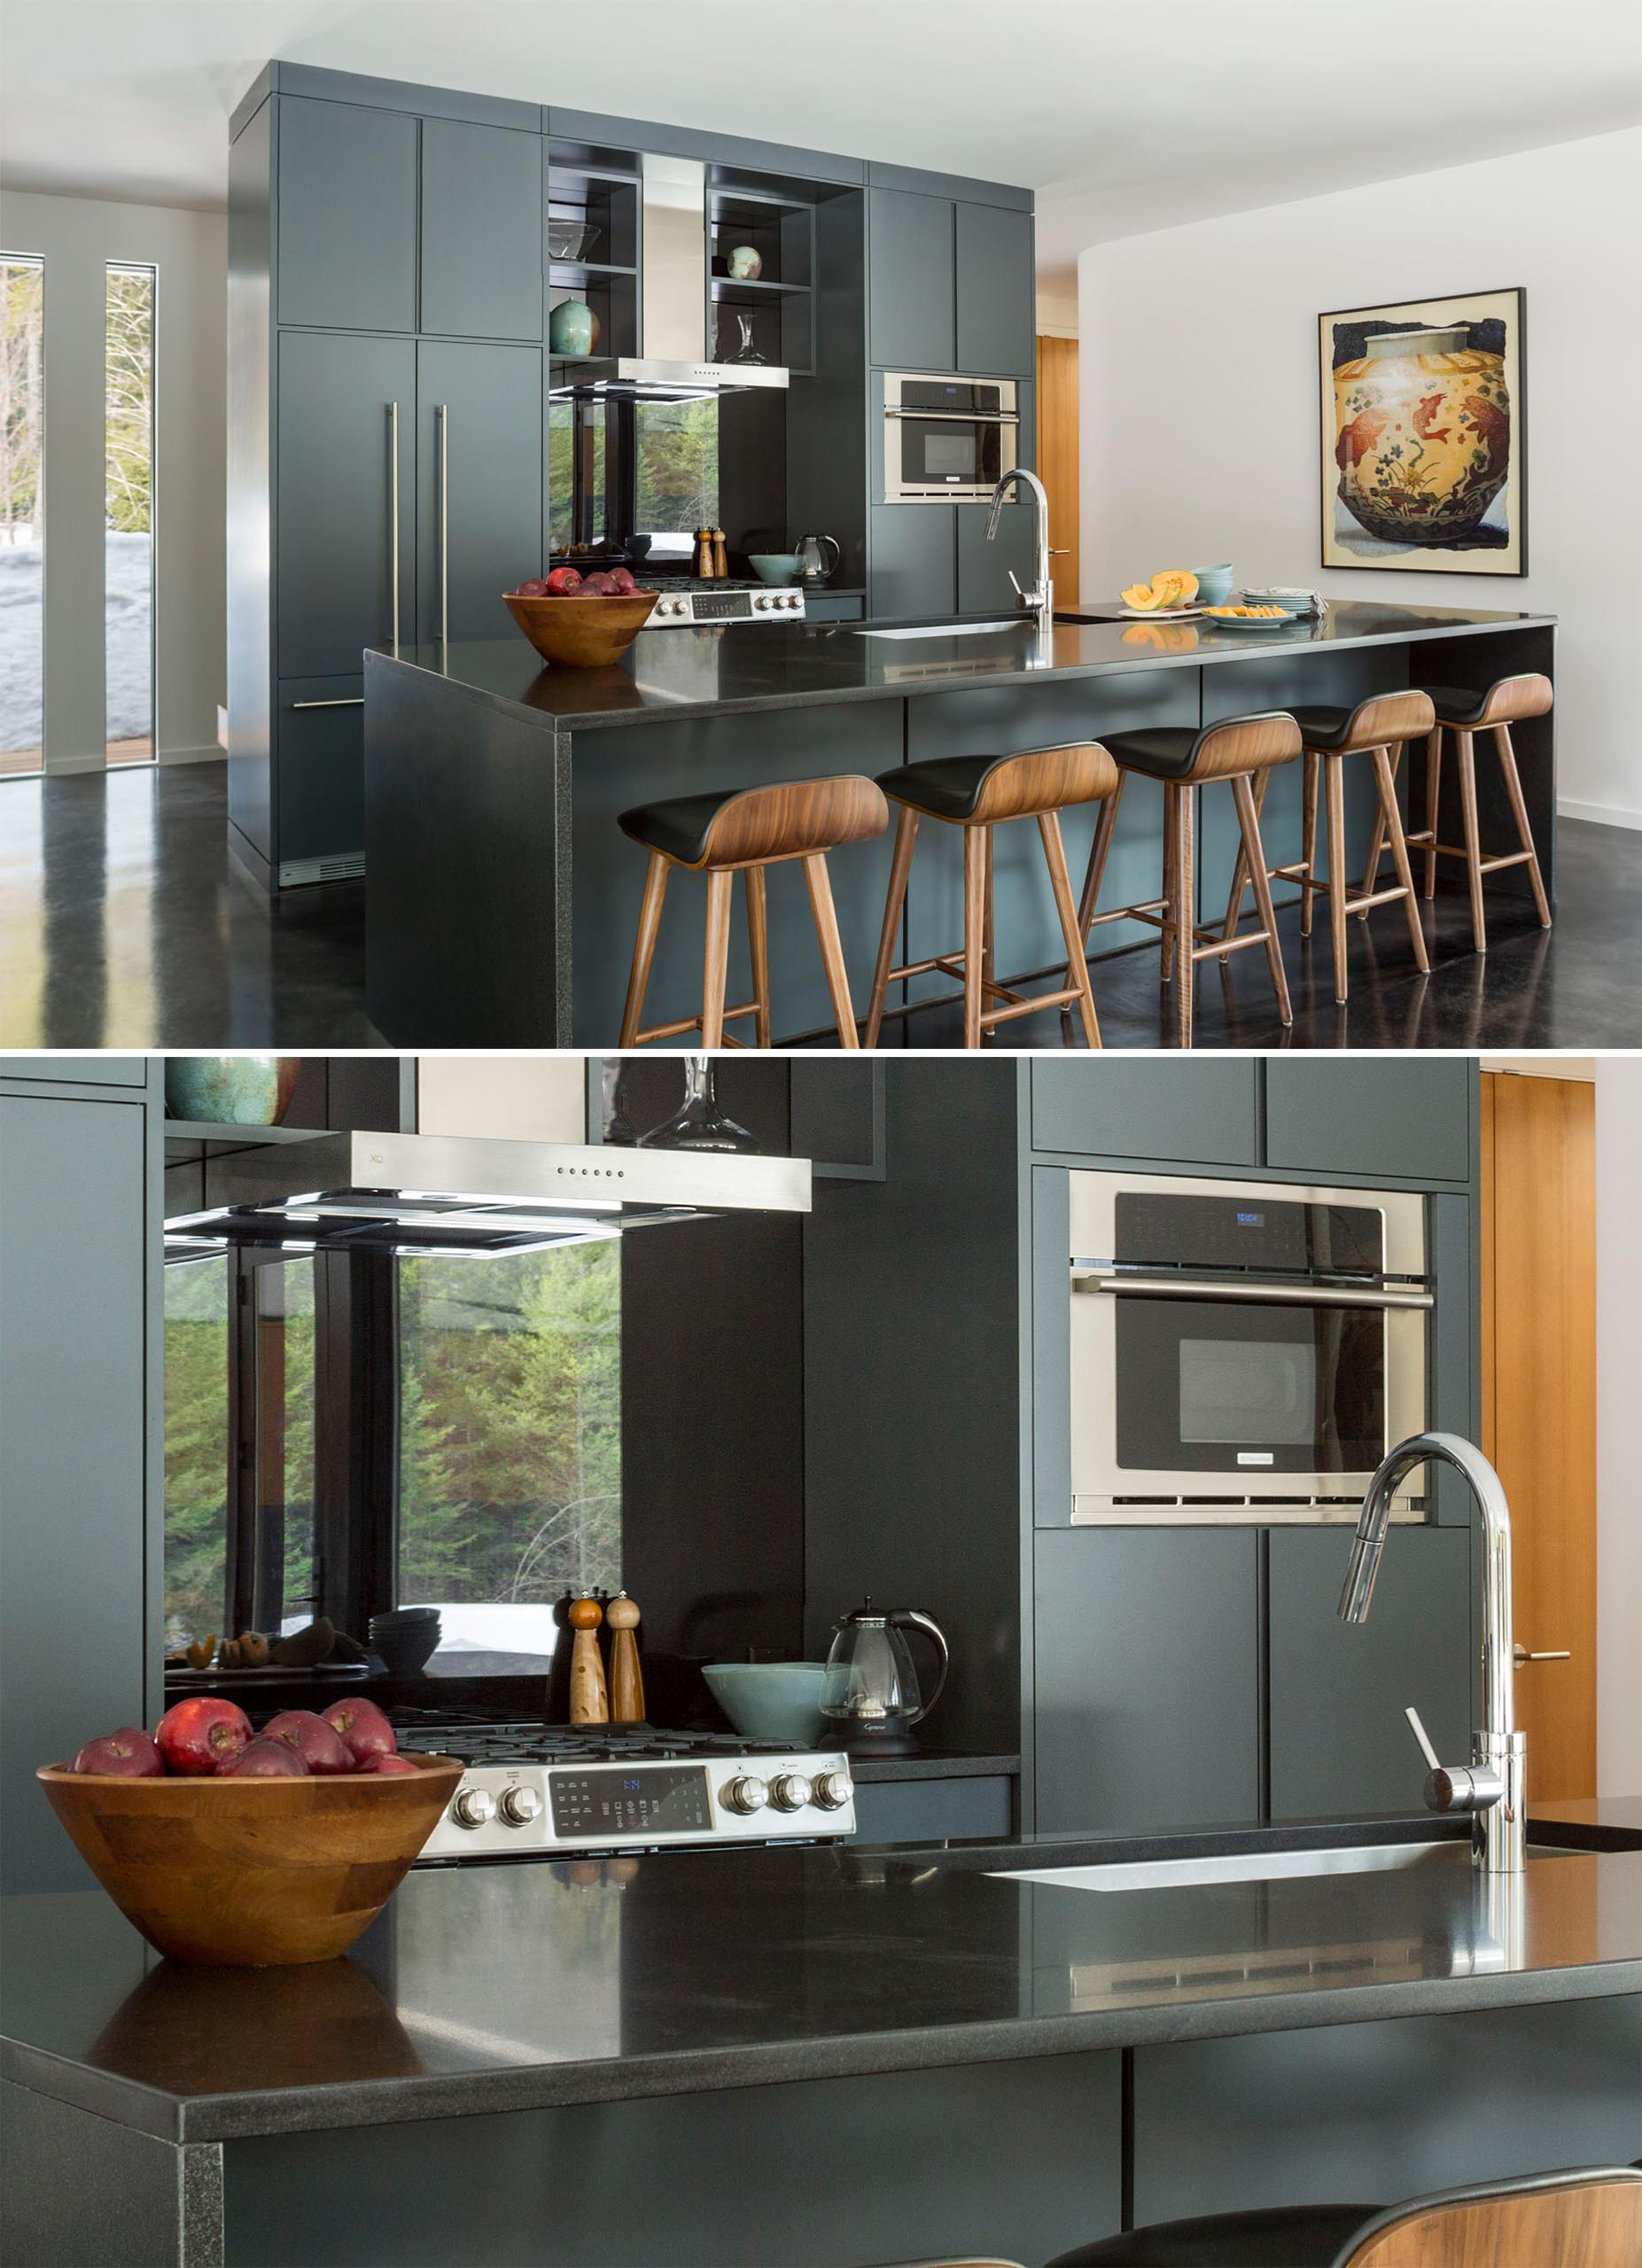 In this modern kitchen, dark gray cabinetry is paired with a dark countertop, while the stainless steel appliances and sink complement the cabinet hardware.